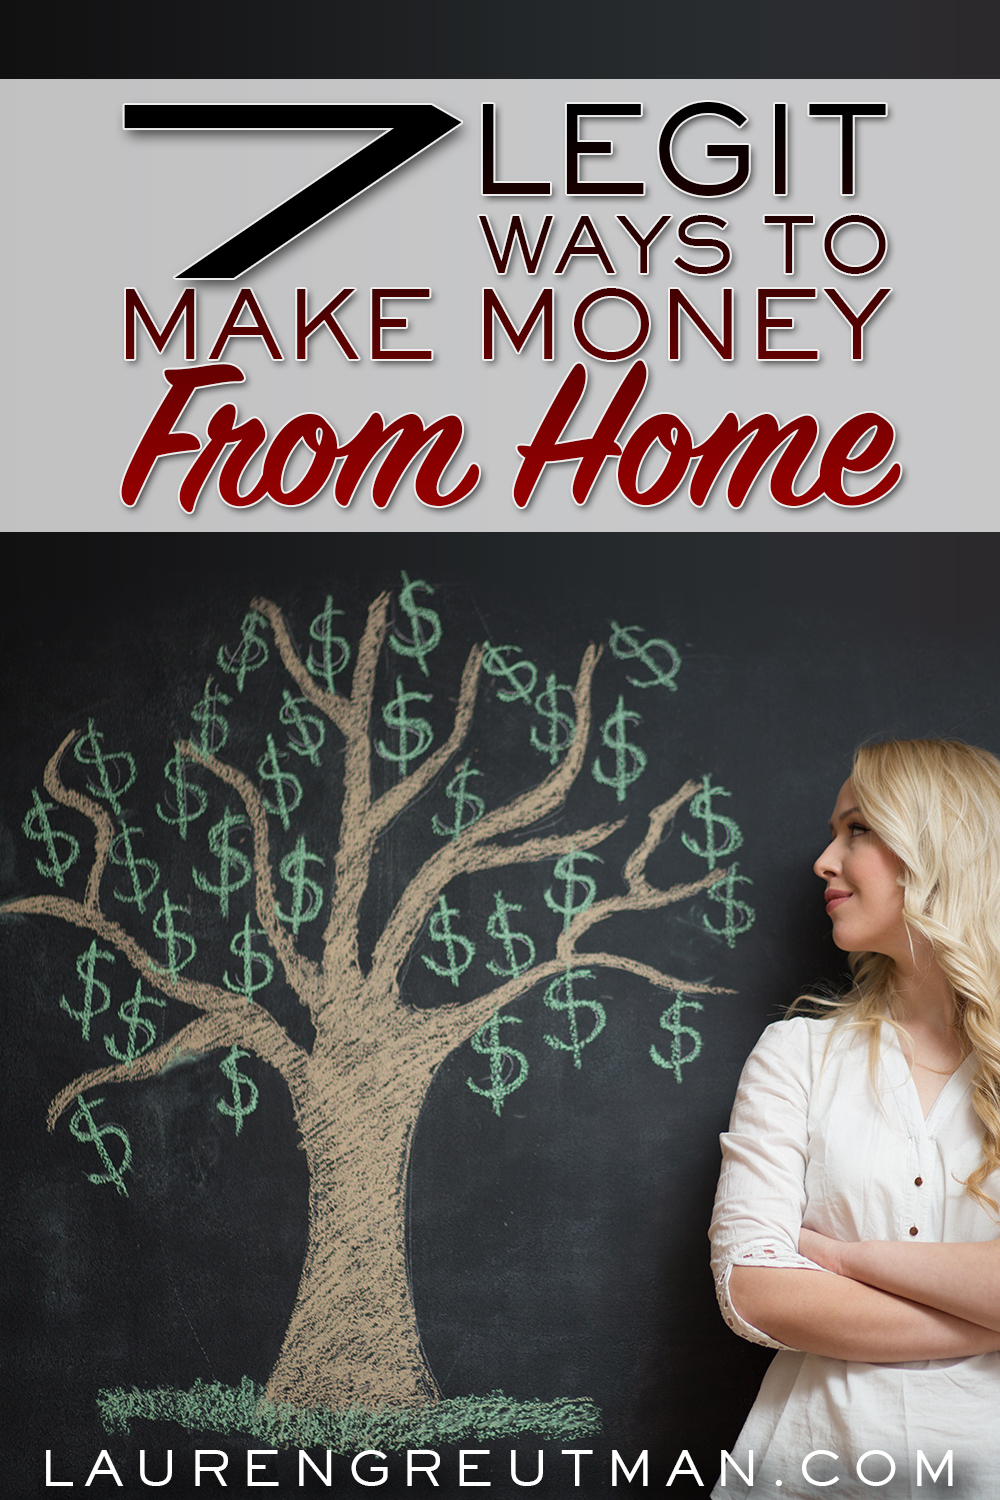 Are you wondering how to make money from home? Check out these 7 ways that can earn you some serious cash!